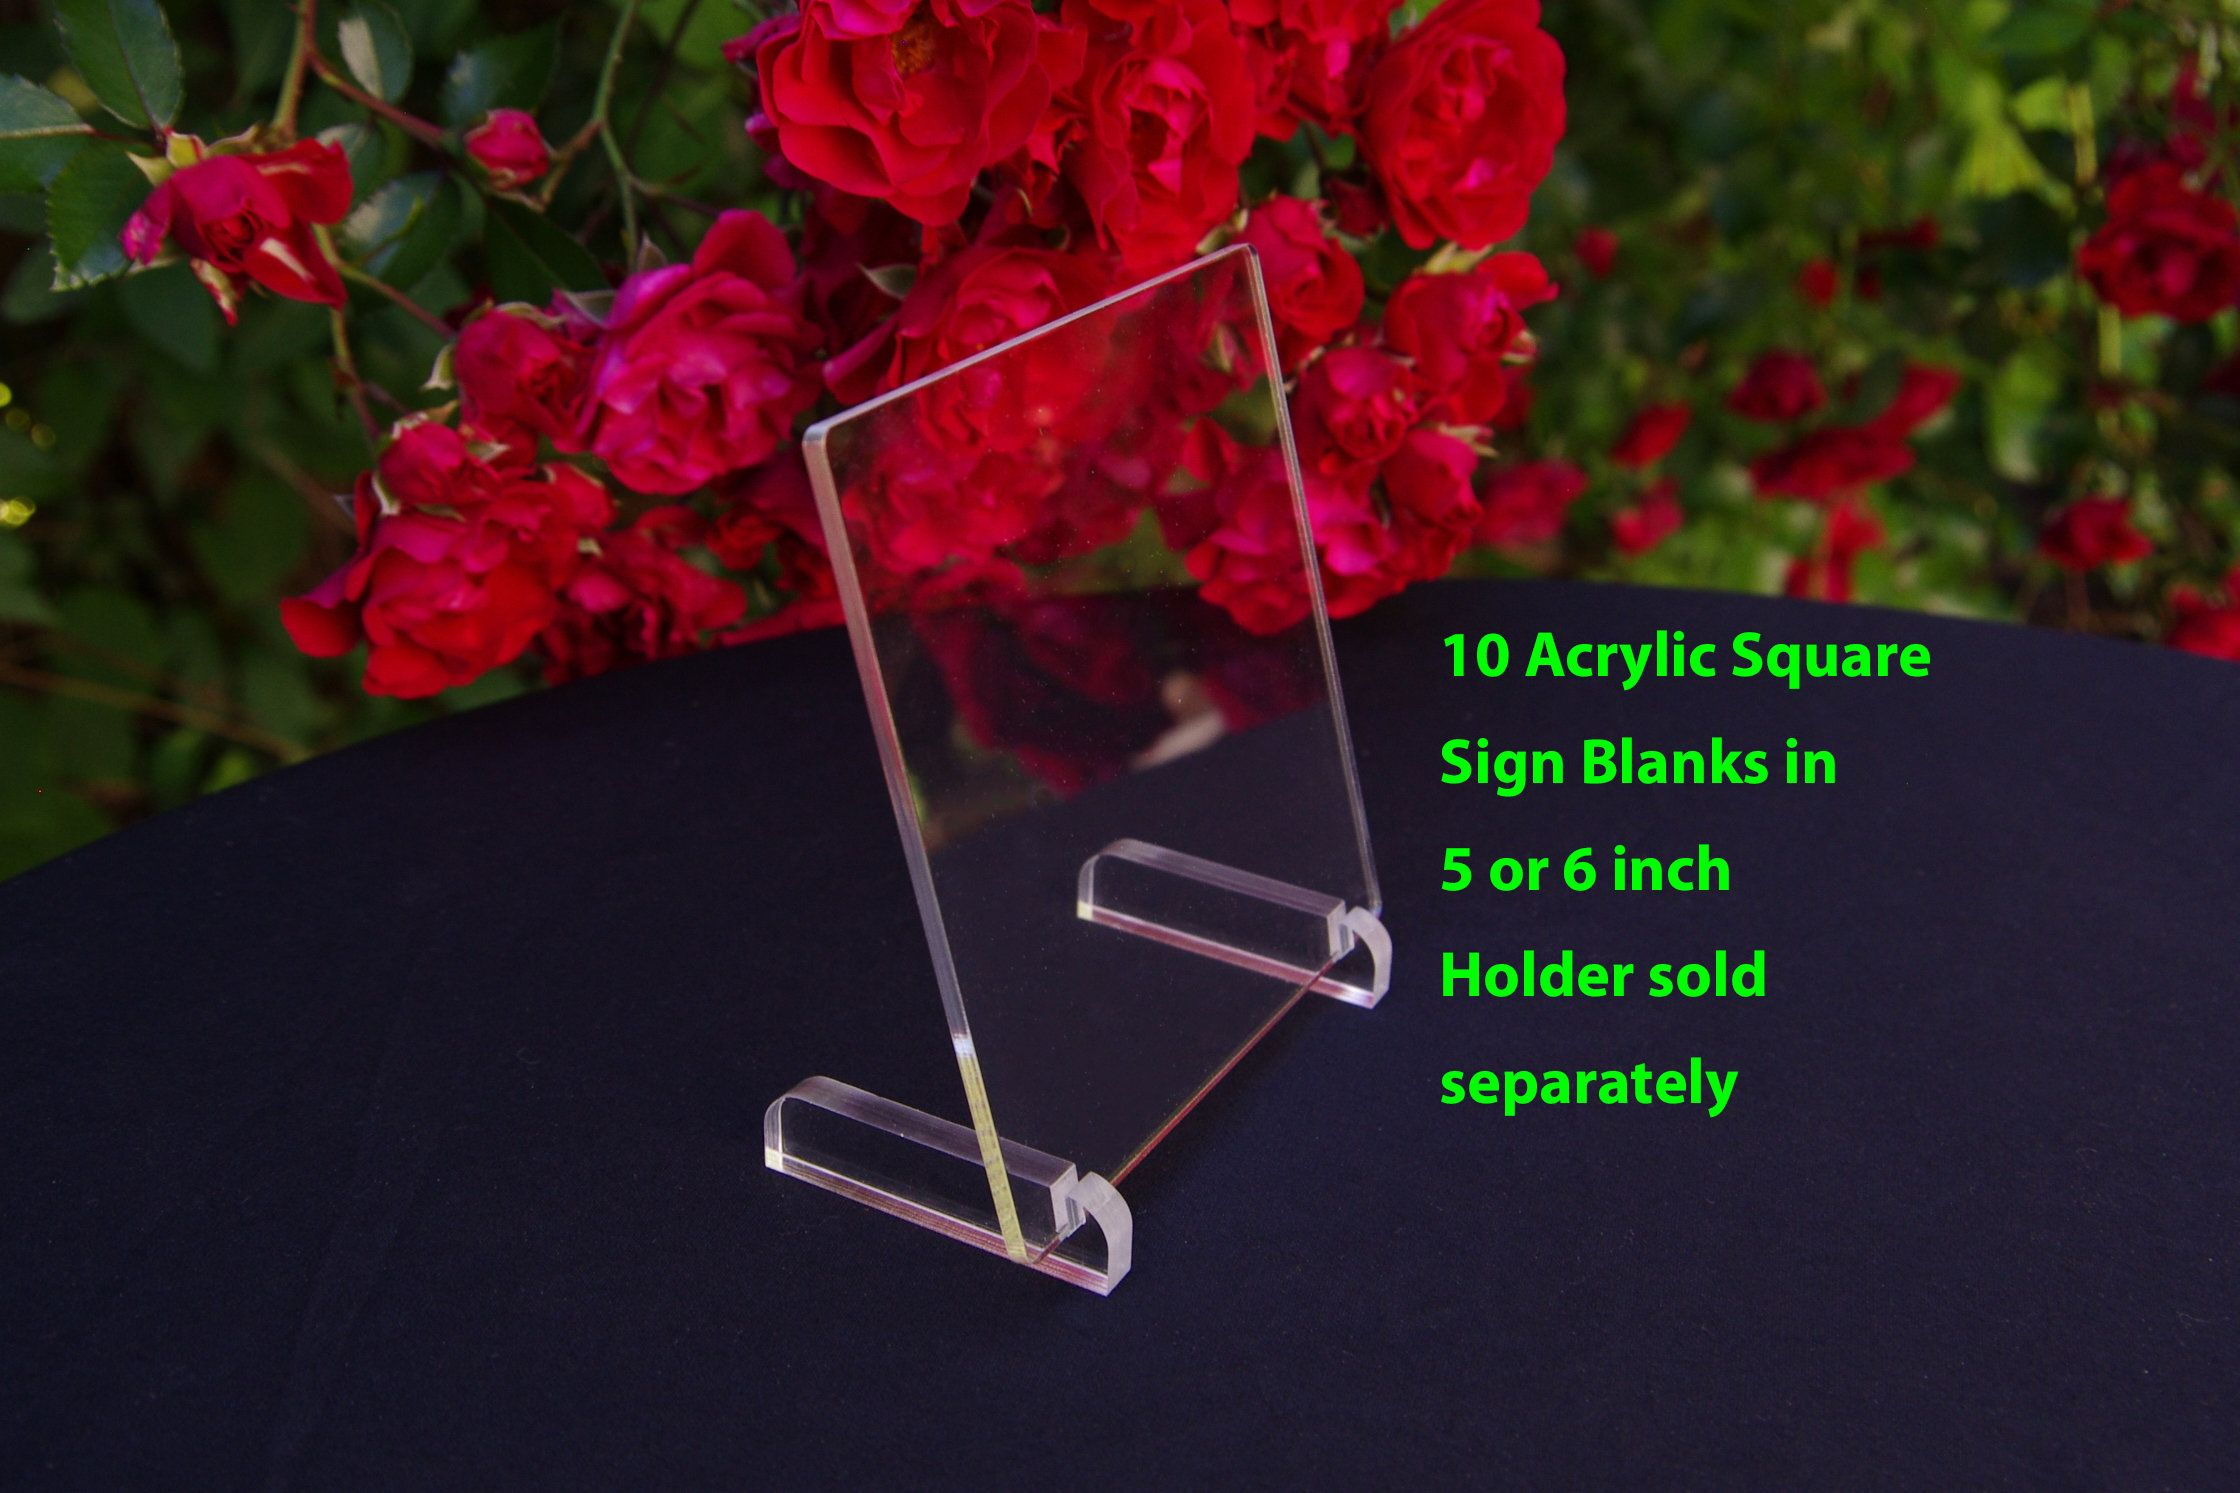 10 Acrylic Blank Table Number Sign Acrylic Sign Blank For Vinyl 5 Inch 6 Inch Acrylic Square Sign Blank Wedding Table Blank Signs Sb03 Acrylic Sign Bla